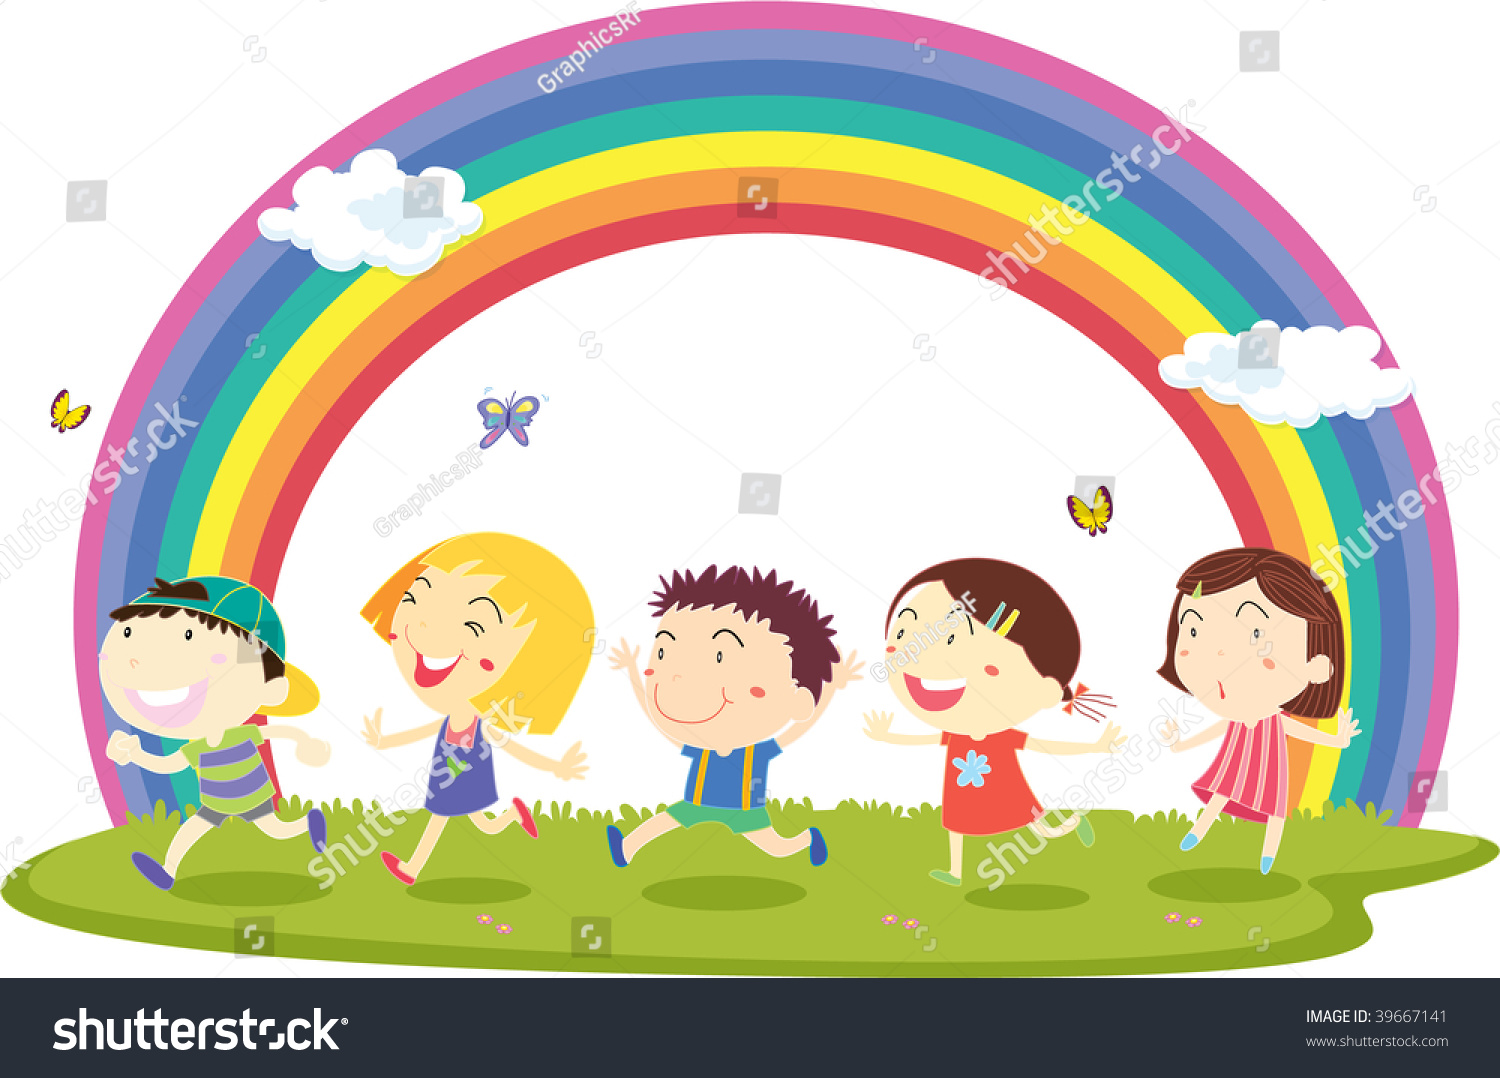 Illustration Of Kids On Rainbow Background 39667141